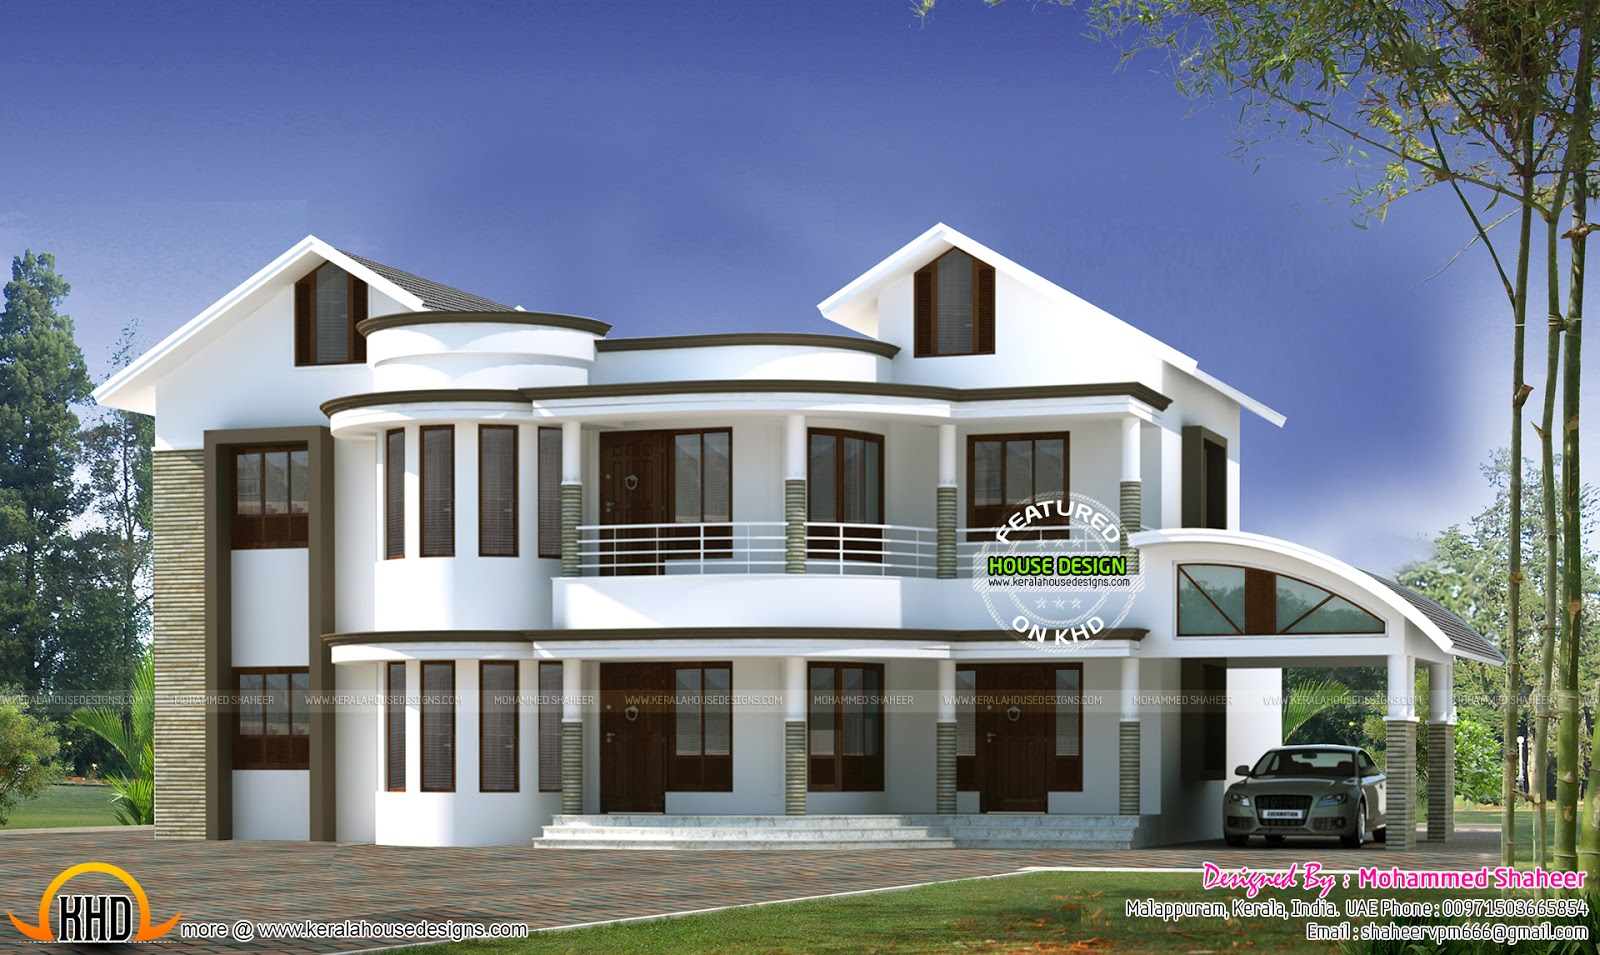 3000 sq ft mixed roof modern home kerala home design and for Home designs 3000 sq ft